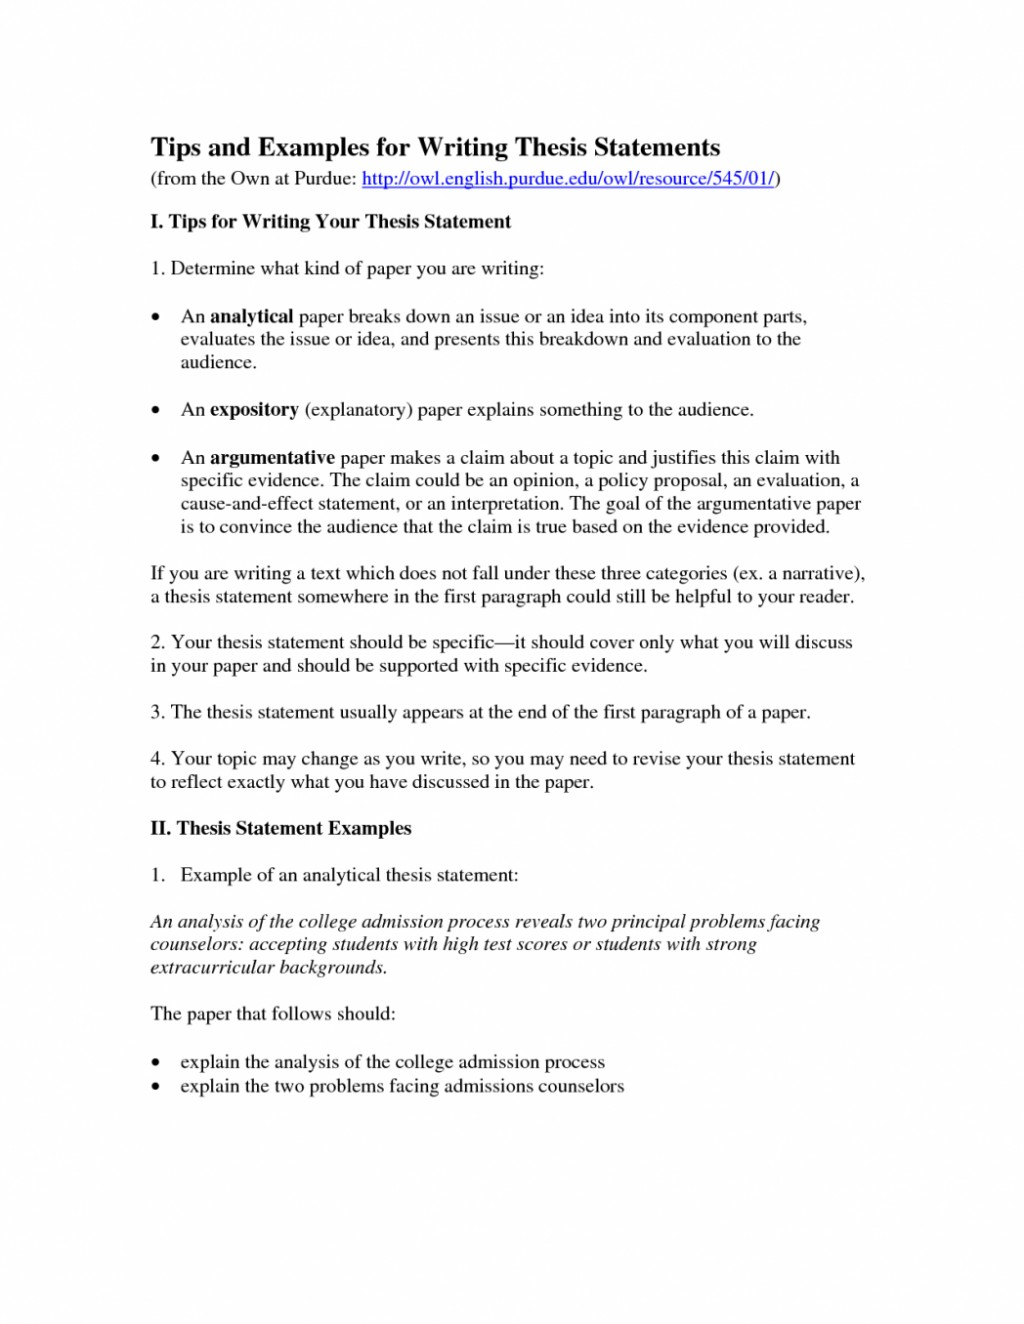 009 Global Warming Argumentative Essay Topics How To Write An Abouts Of Thesis Statements For Essays Template Dtu 1048x1356 Excellent Large